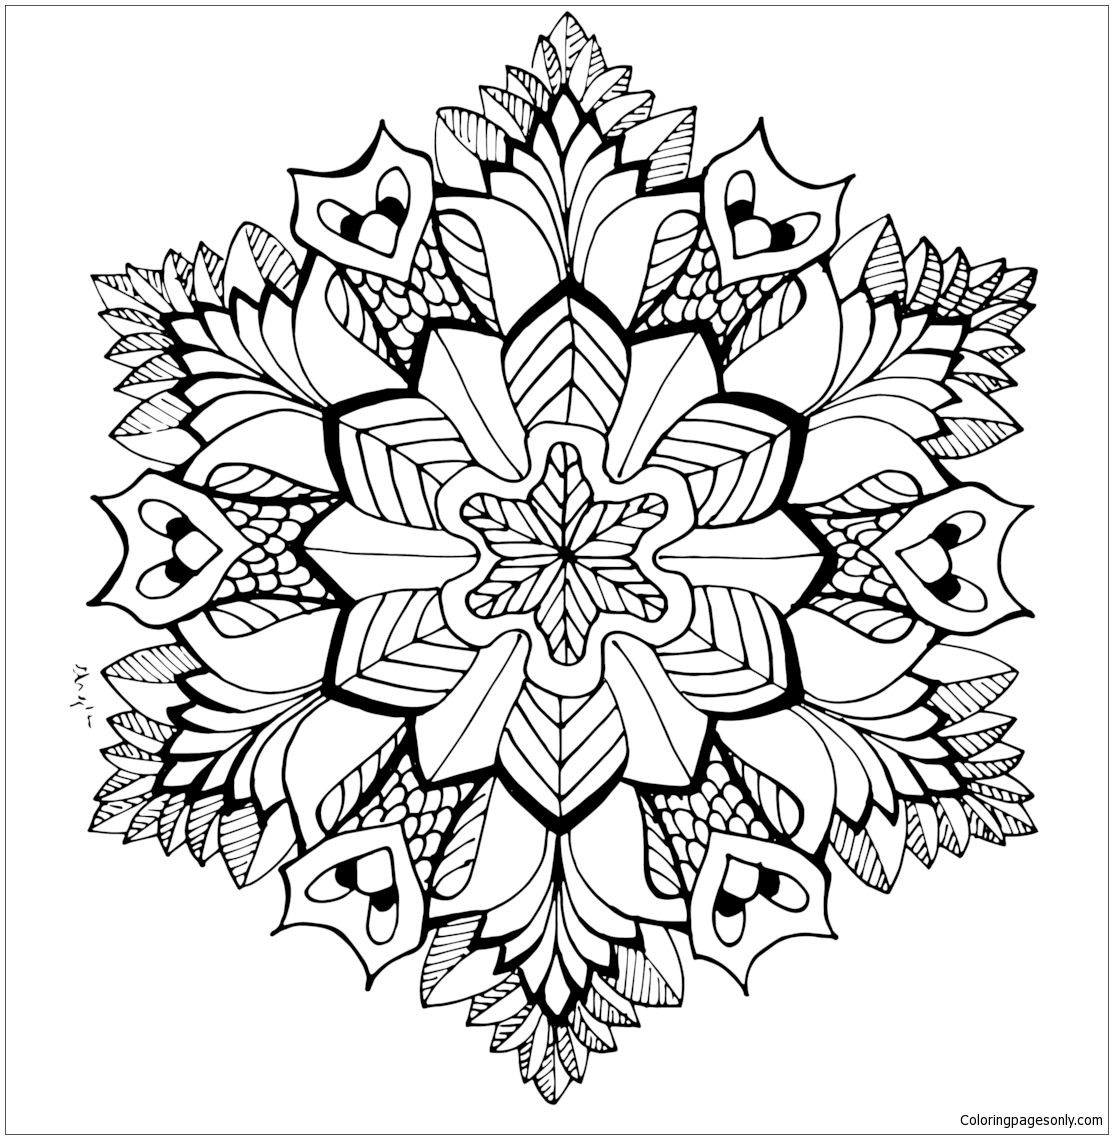 cute mandala coloring pages a cute floral mandala vector free download coloring cute mandala pages